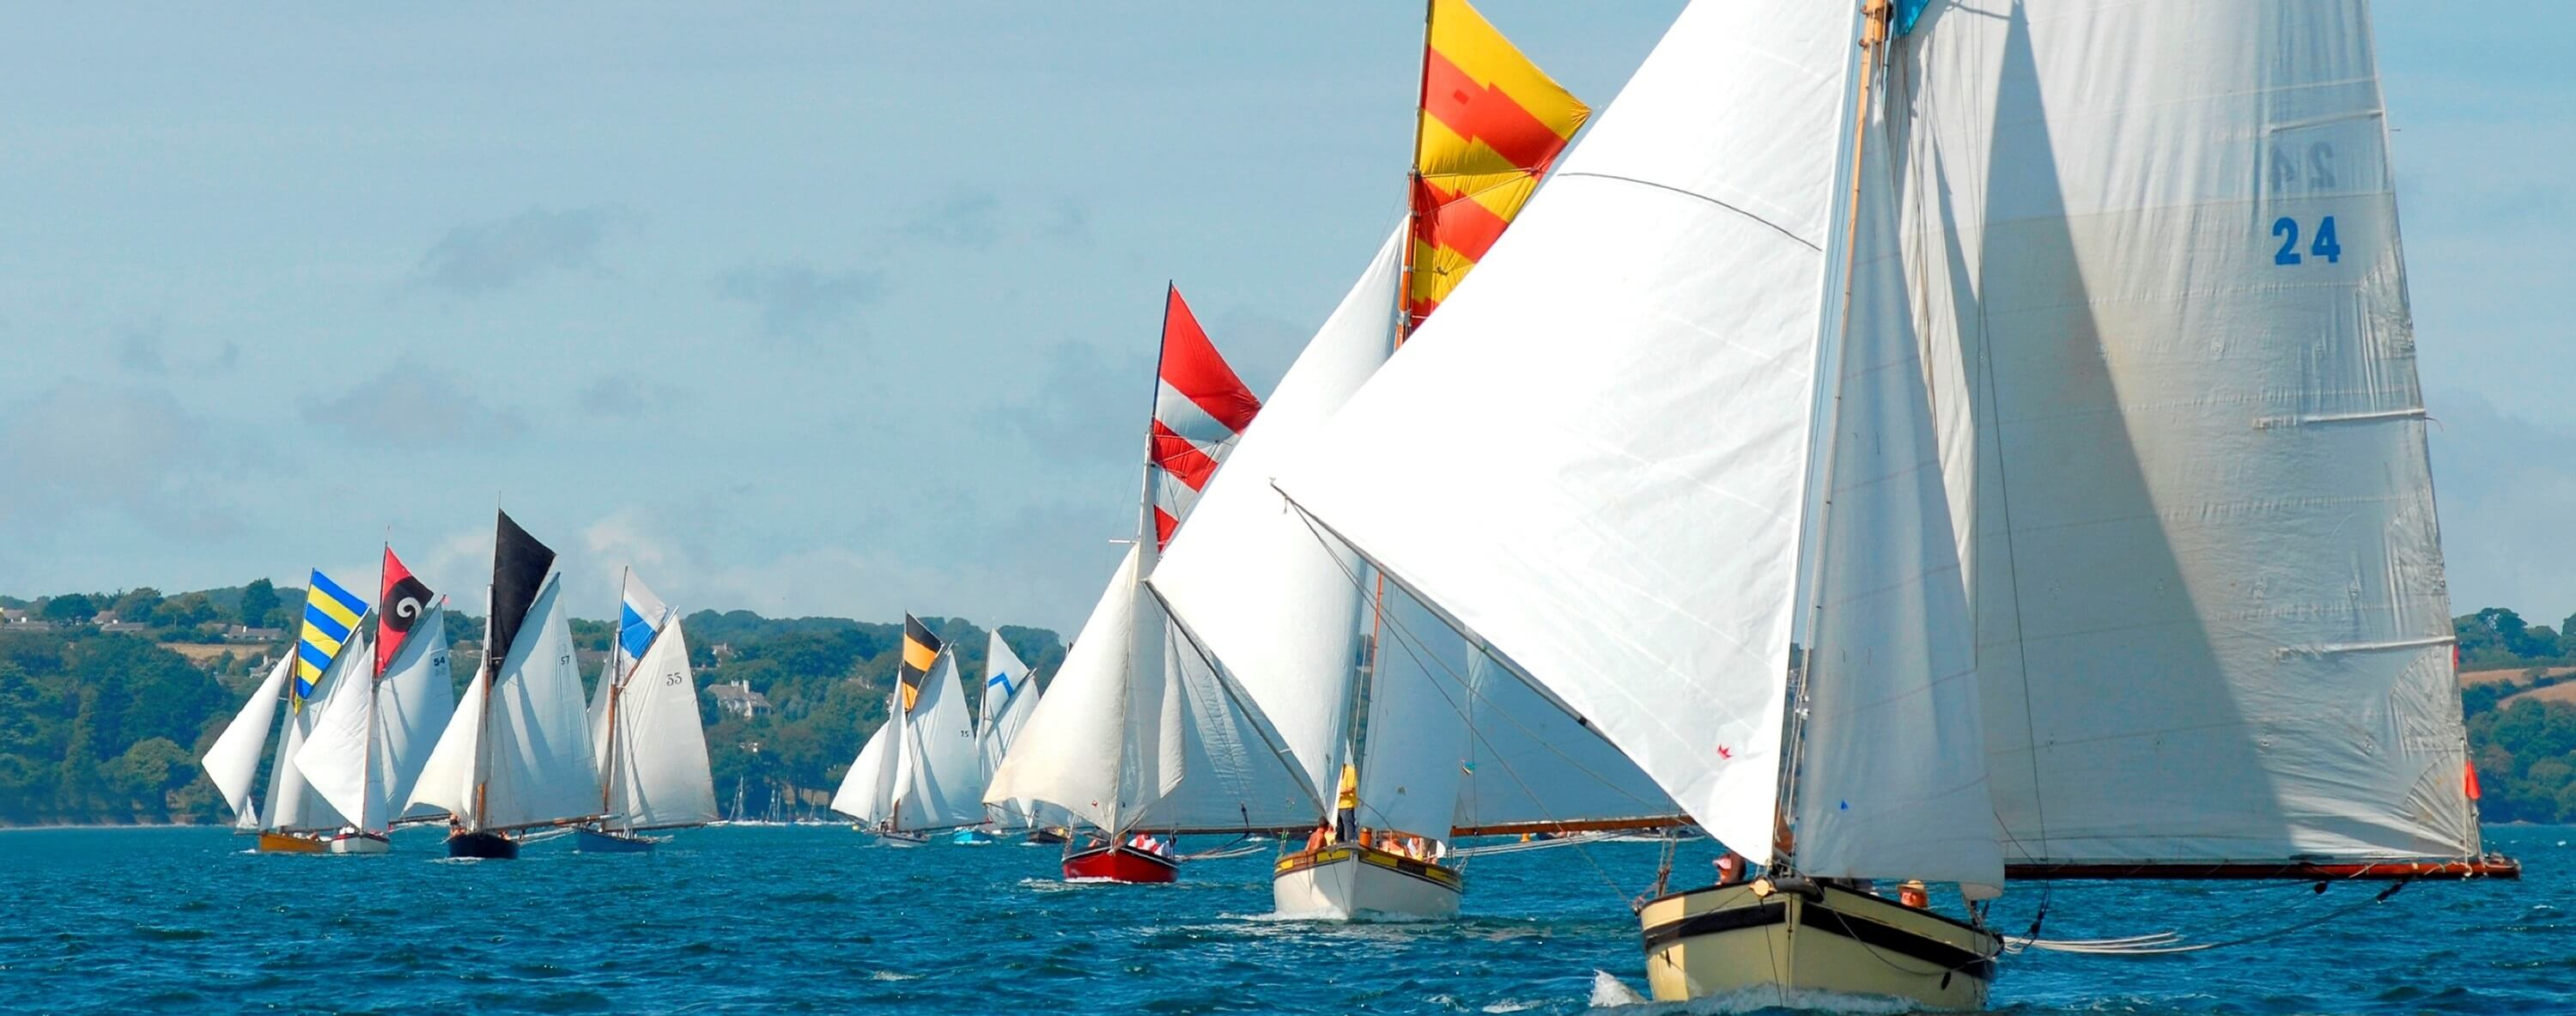 Image result for falmouth boats